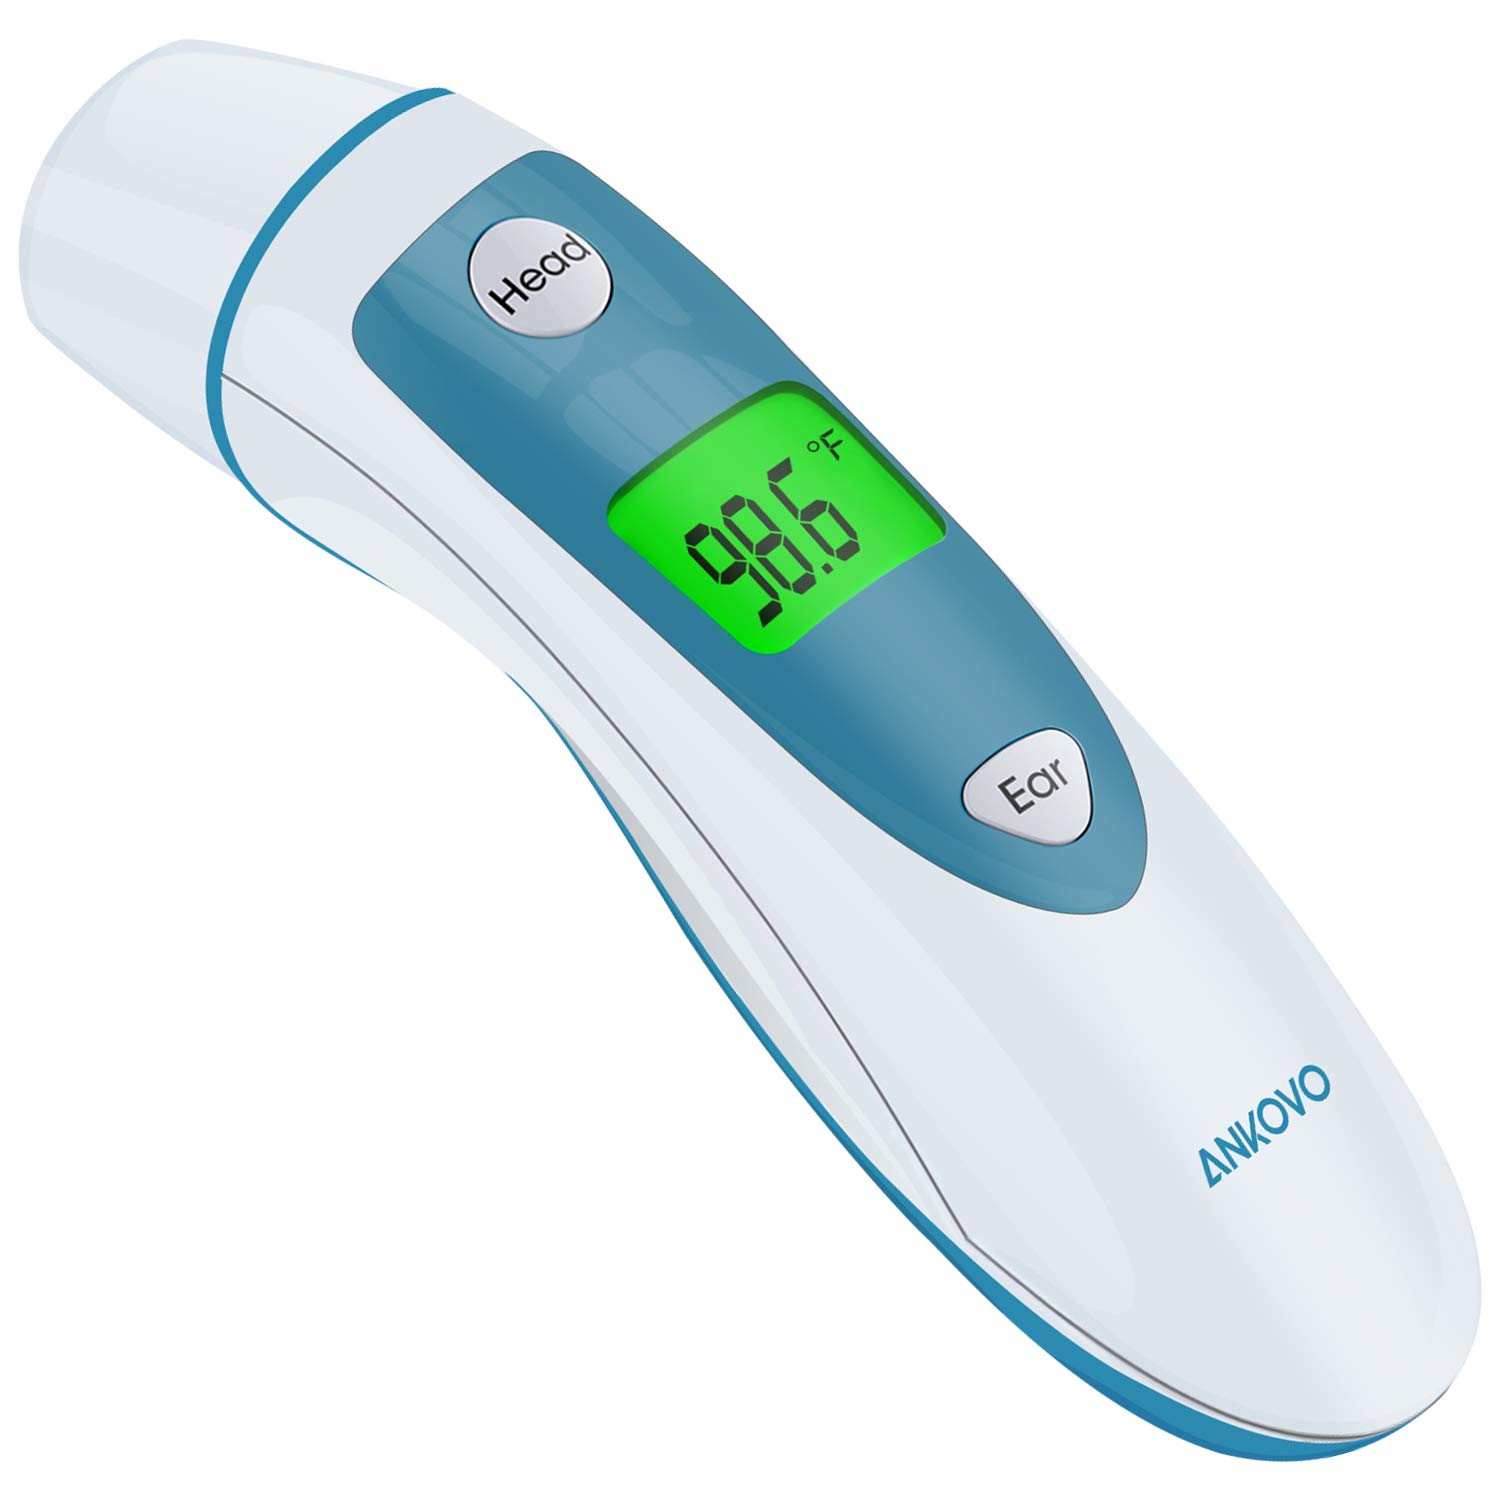 Baby Thermometer for Fever, Forehead and Ear Thermometer Adults, Temporal Digital Thermometer Medical with Instant Read Infrared Thermometers for Adults, Kids and Infants, Blue by ANKOVO